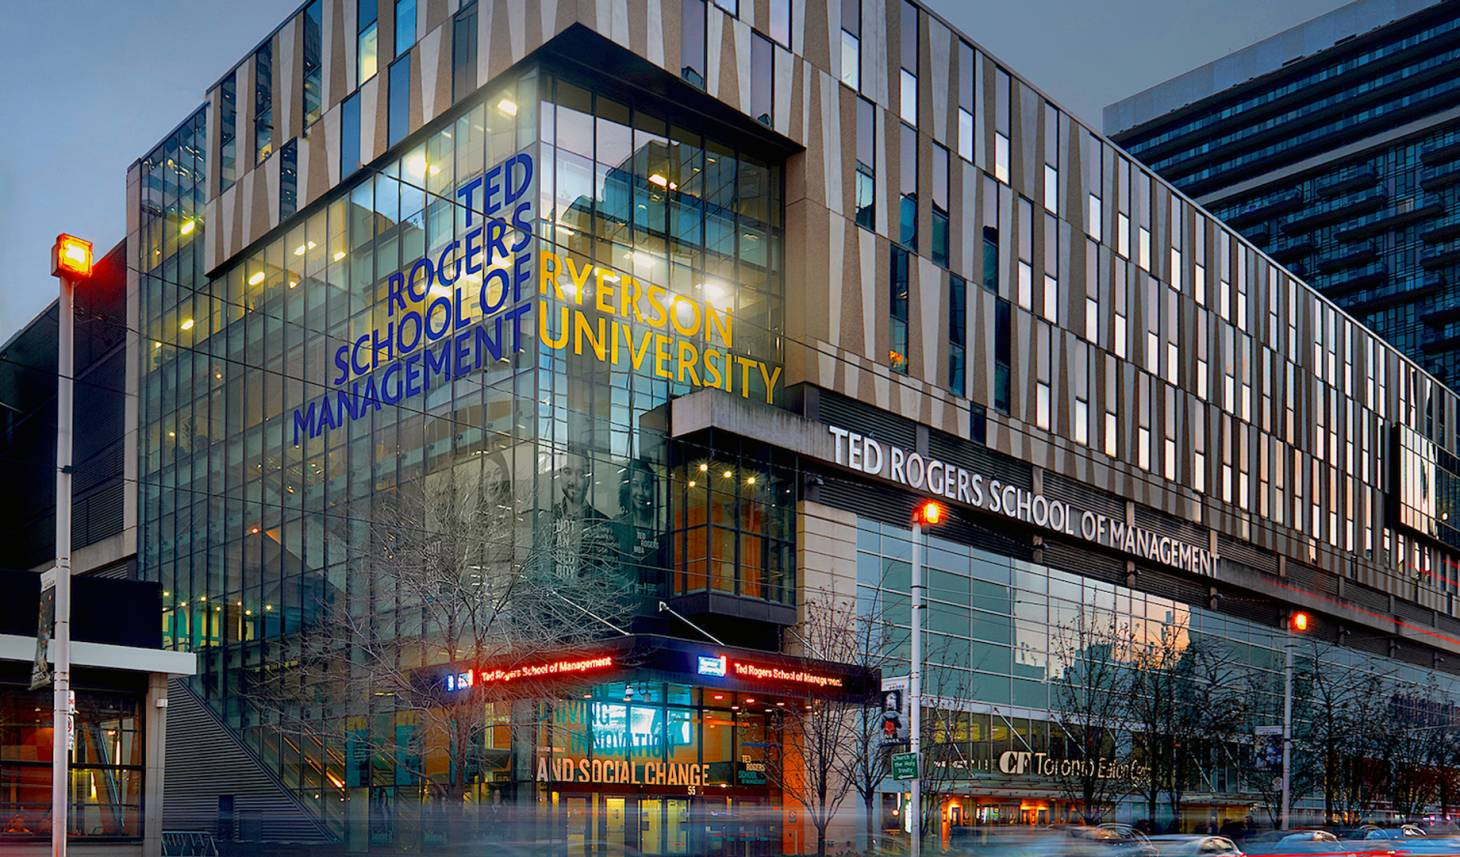 Campus Ted Rogers School of Management của Ryerson University